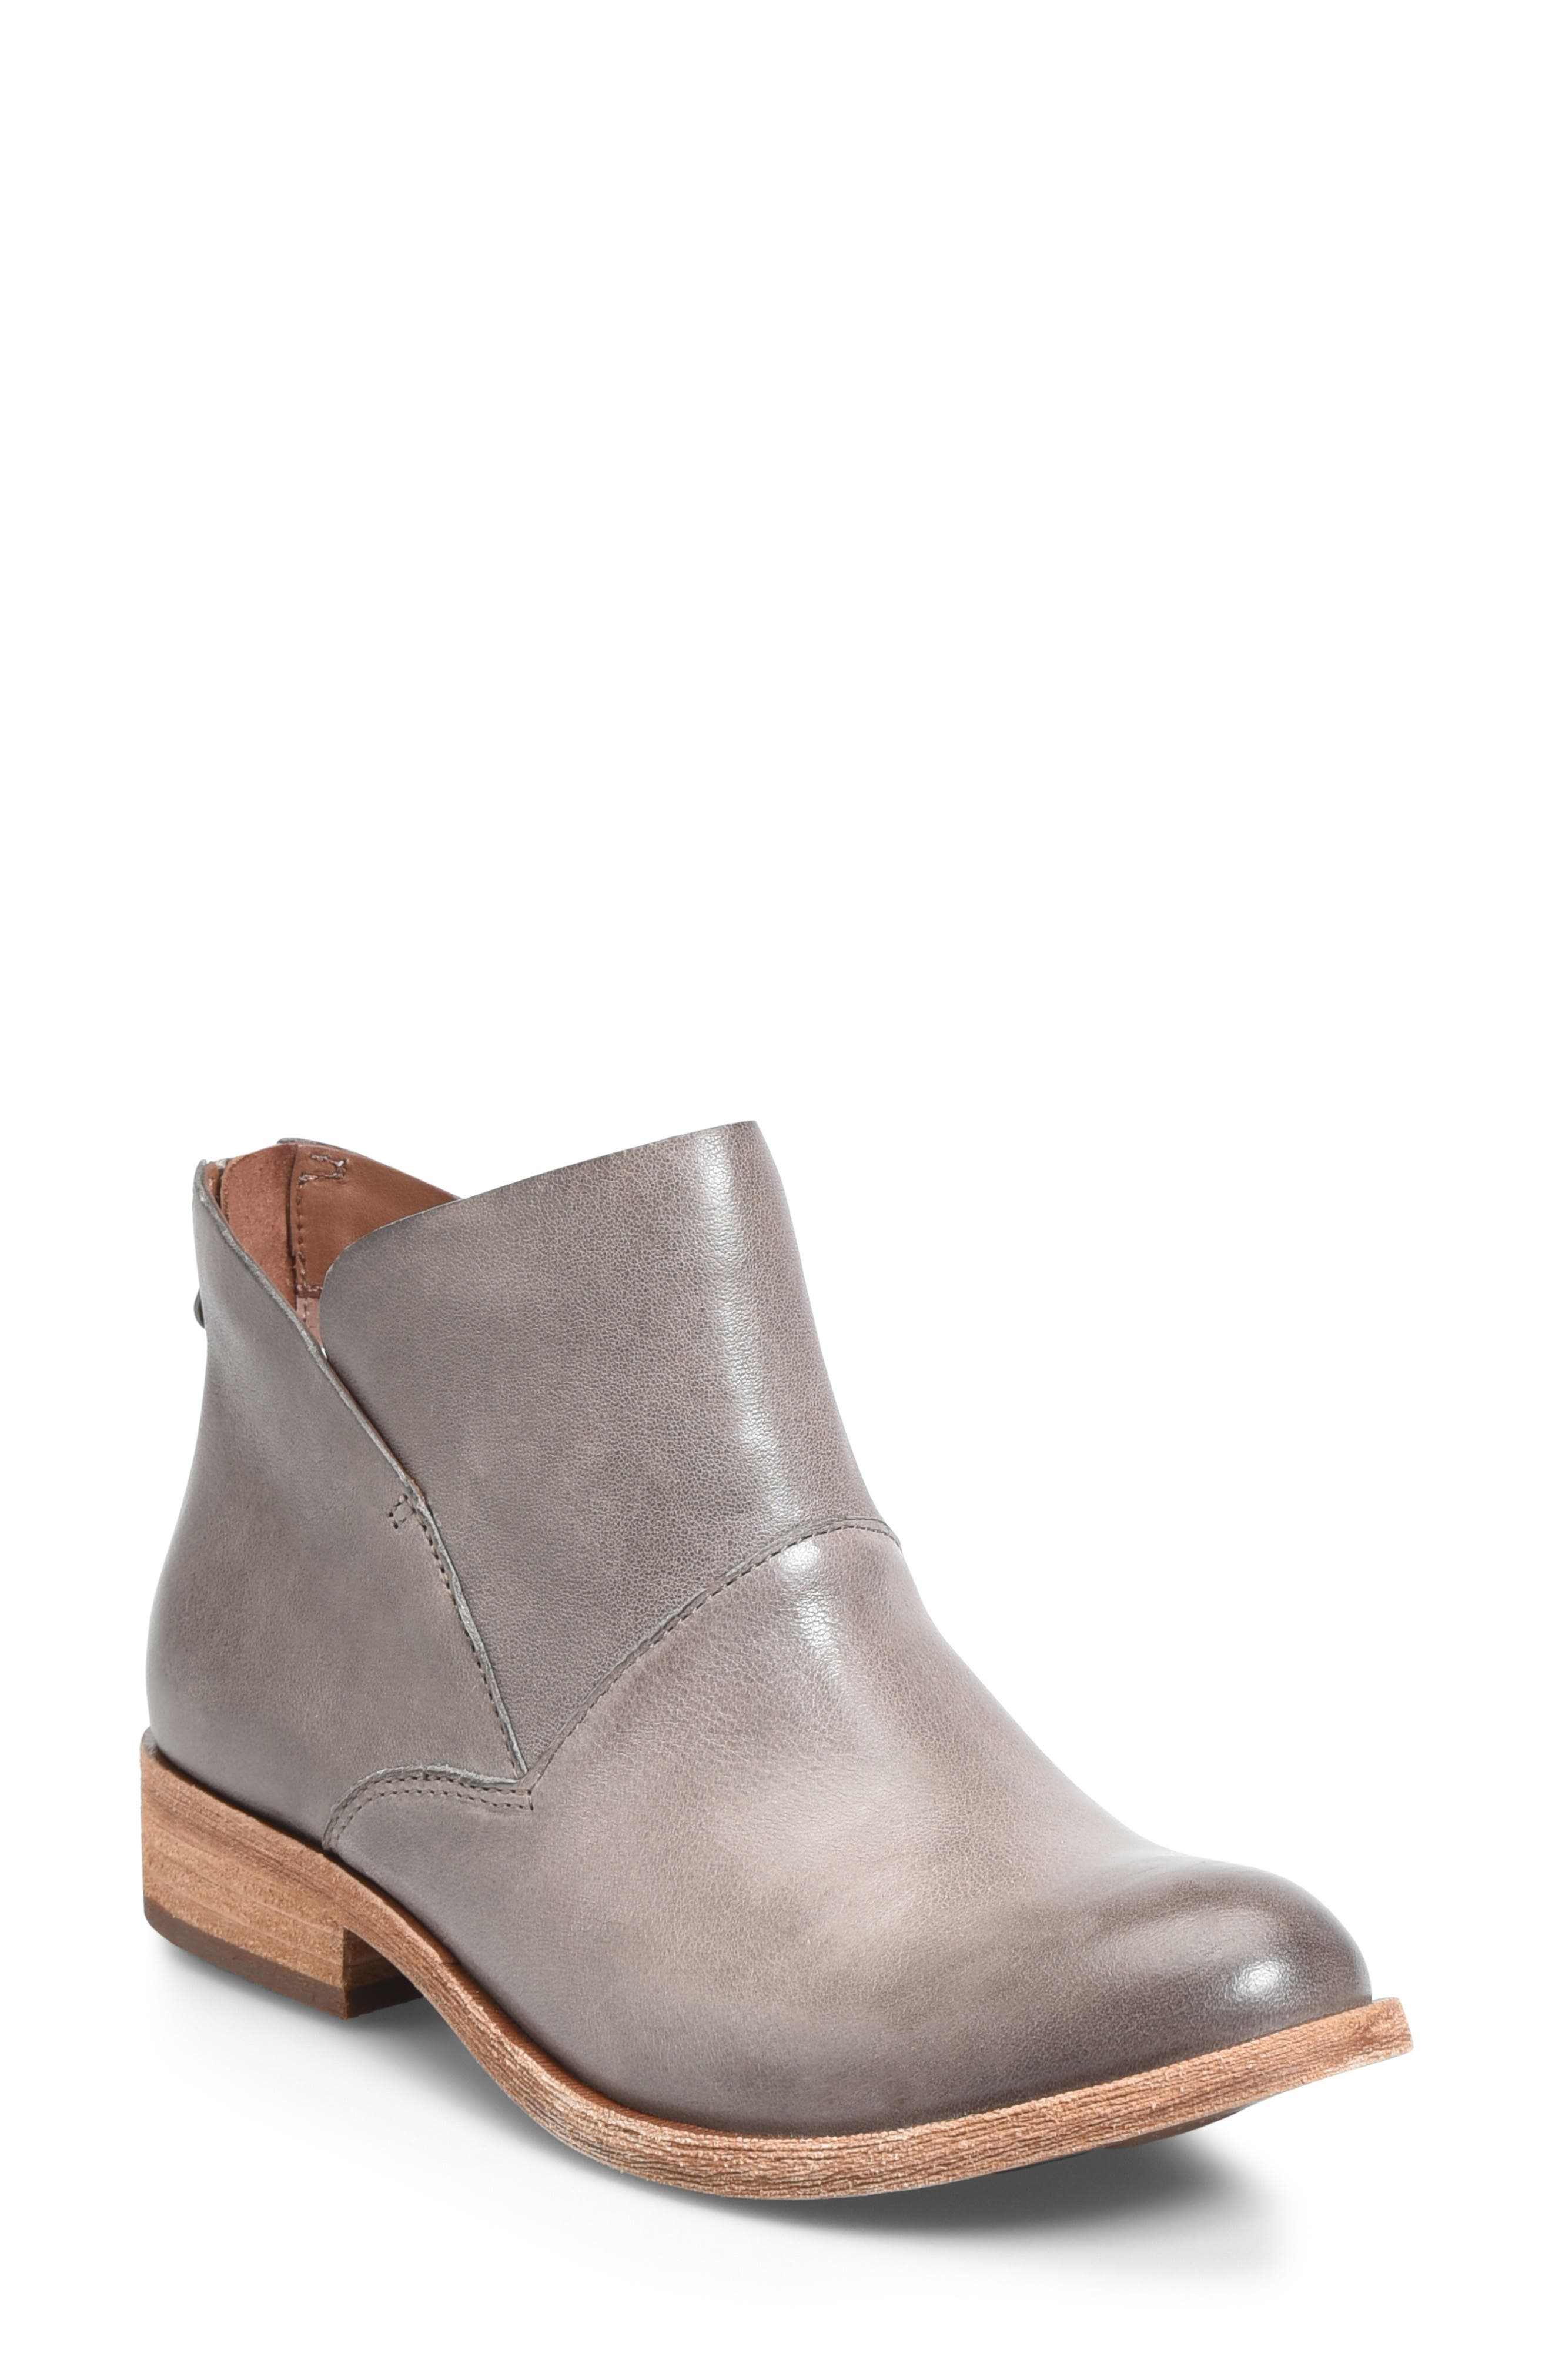 Ryder Ankle Boot,                         Main,                         color, GREY LEATHER